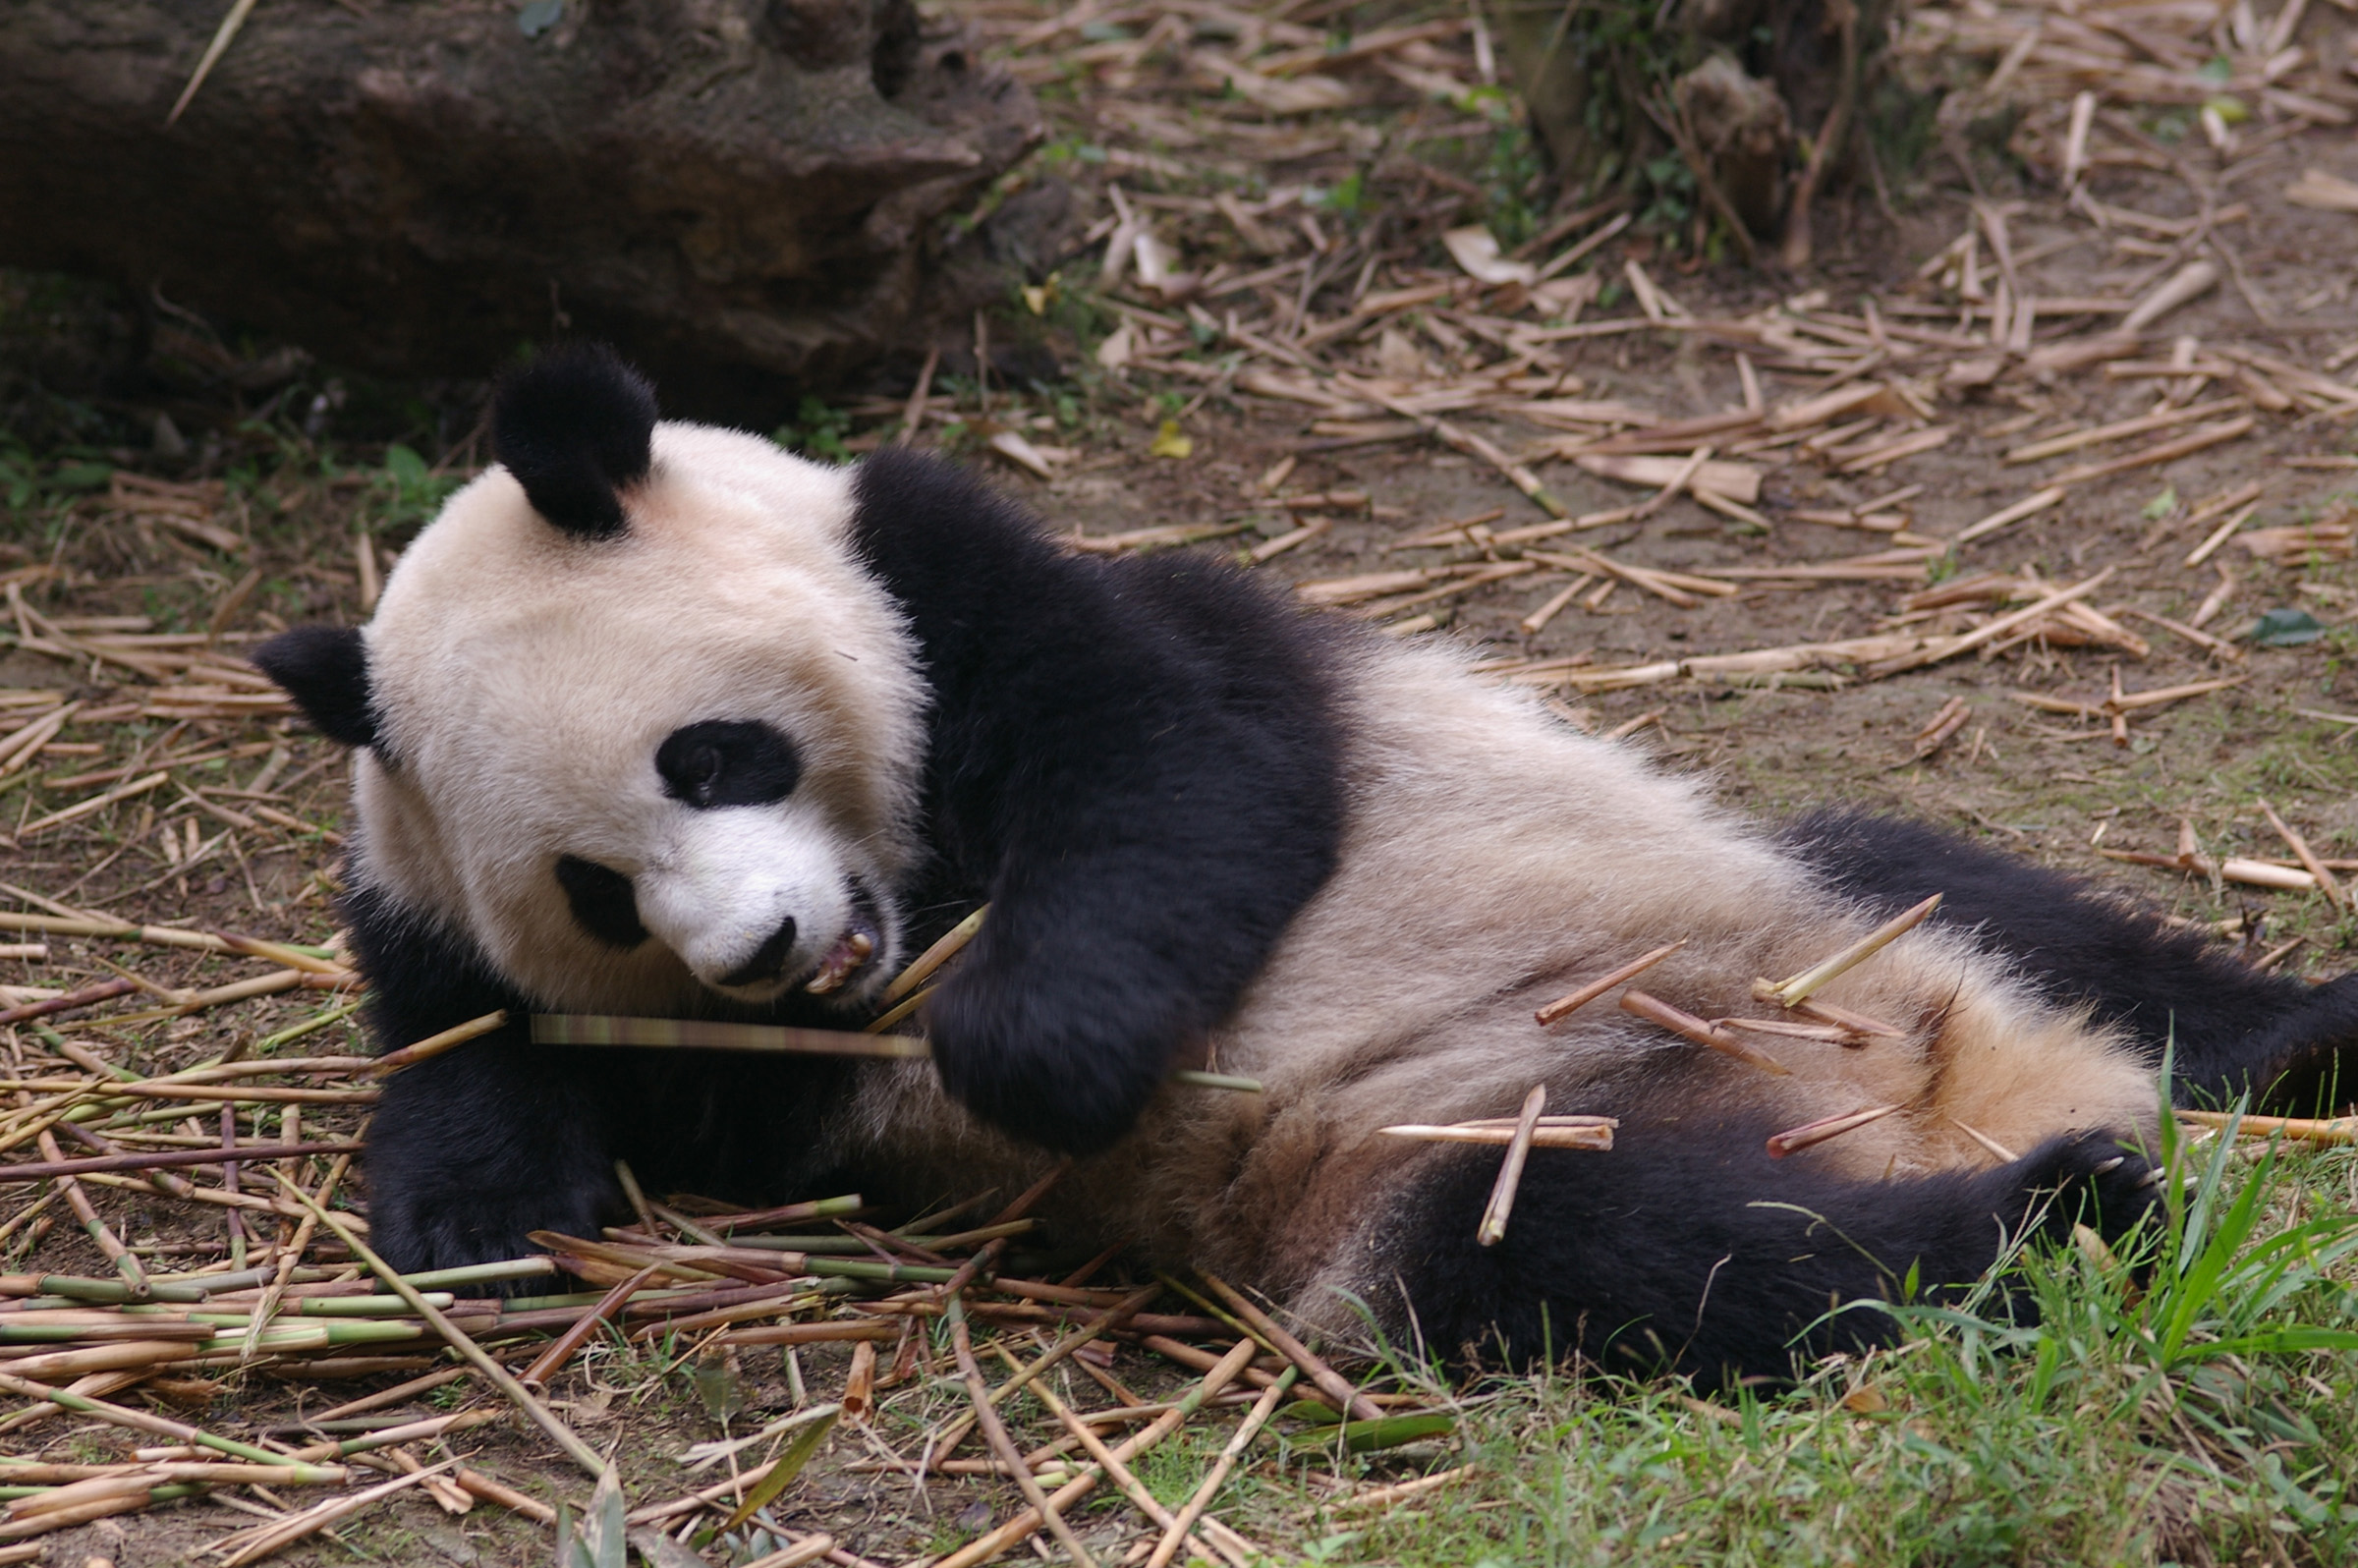 Close up Black and White Panda Animal Resting at the Zoo While Eating Bamboo Shoots.